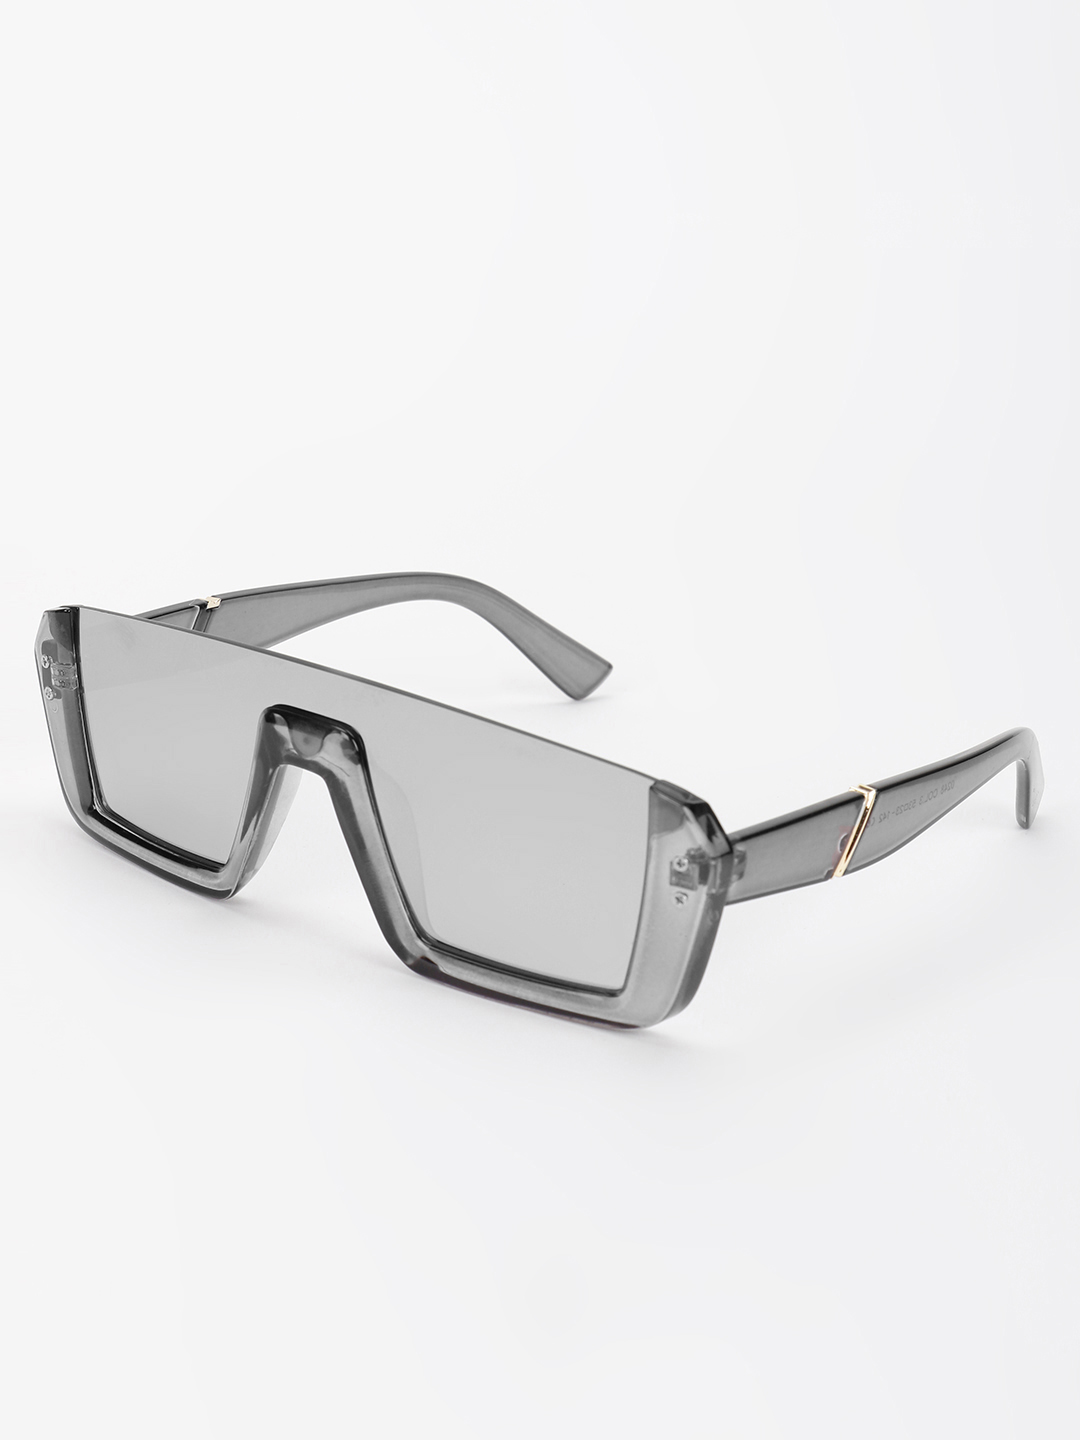 Pataaka Grey Mirrored Square Tinted Sunglasses 1